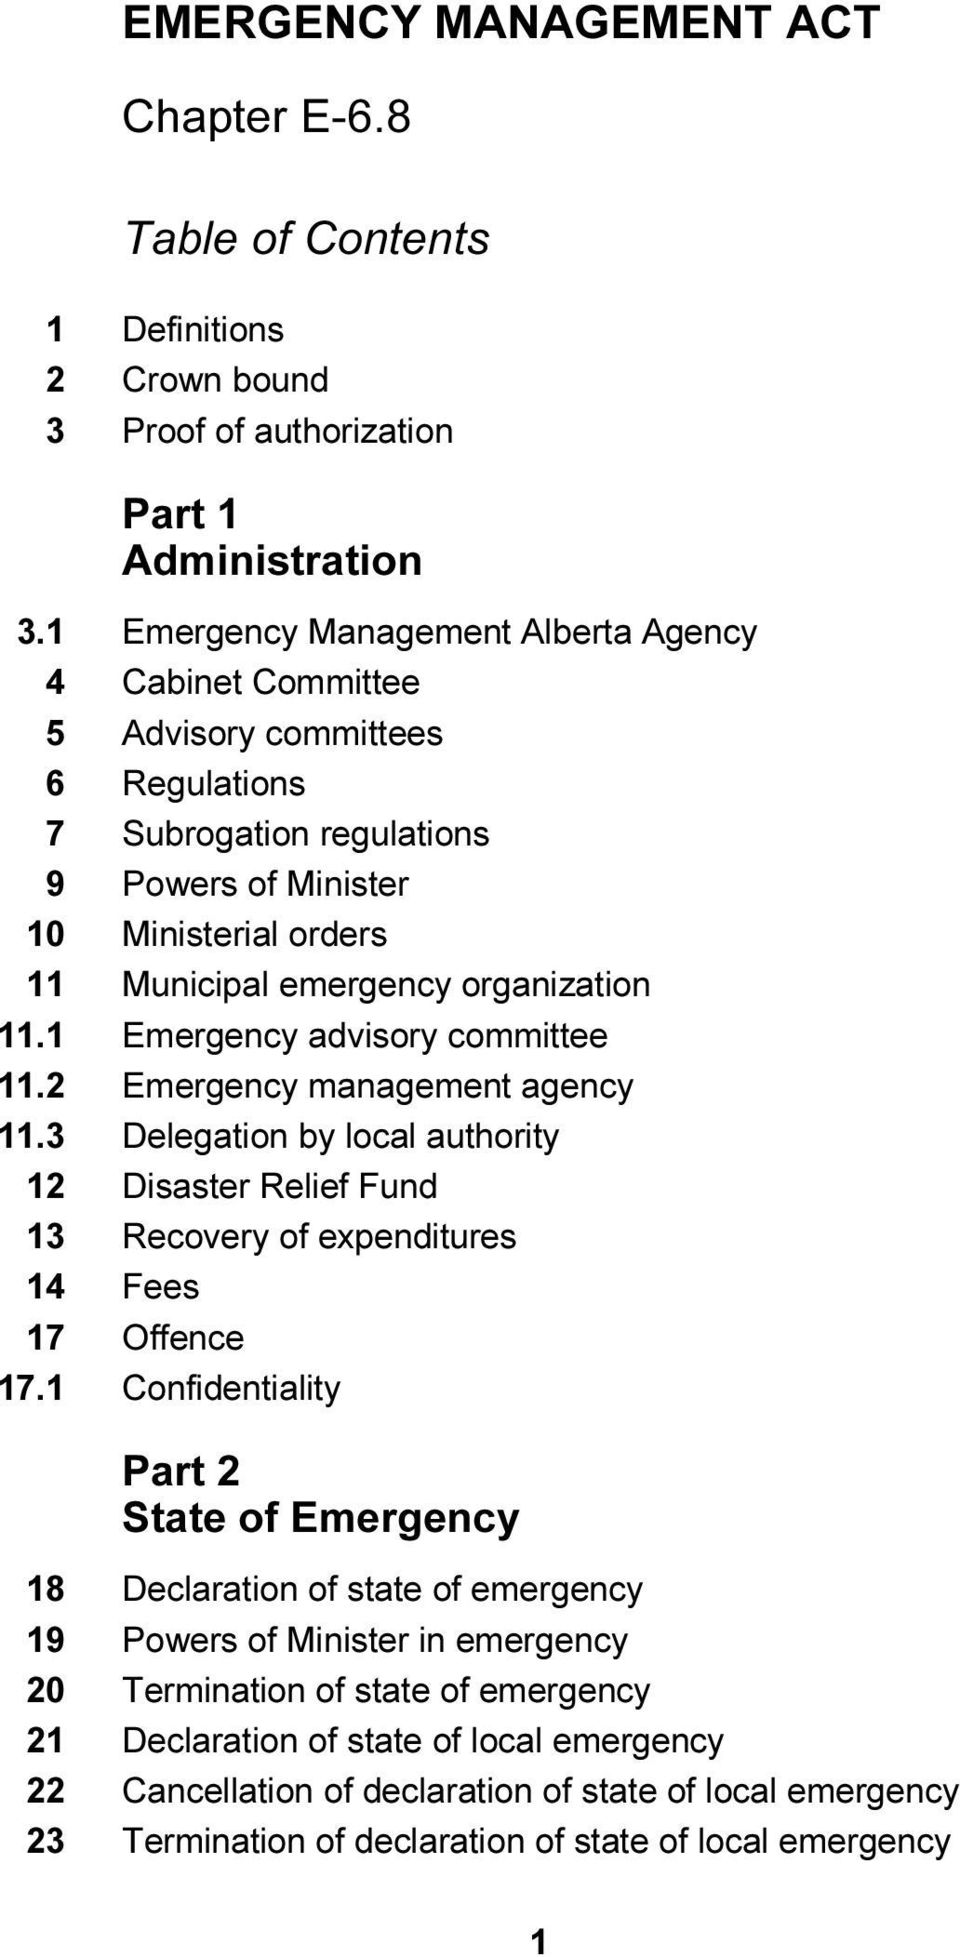 organization 11.1 Emergency advisory committee 11.2 Emergency management agency 11.3 Delegation by local authority 12 Disaster Relief Fund 13 Recovery of expenditures 14 Fees 17 Offence 17.